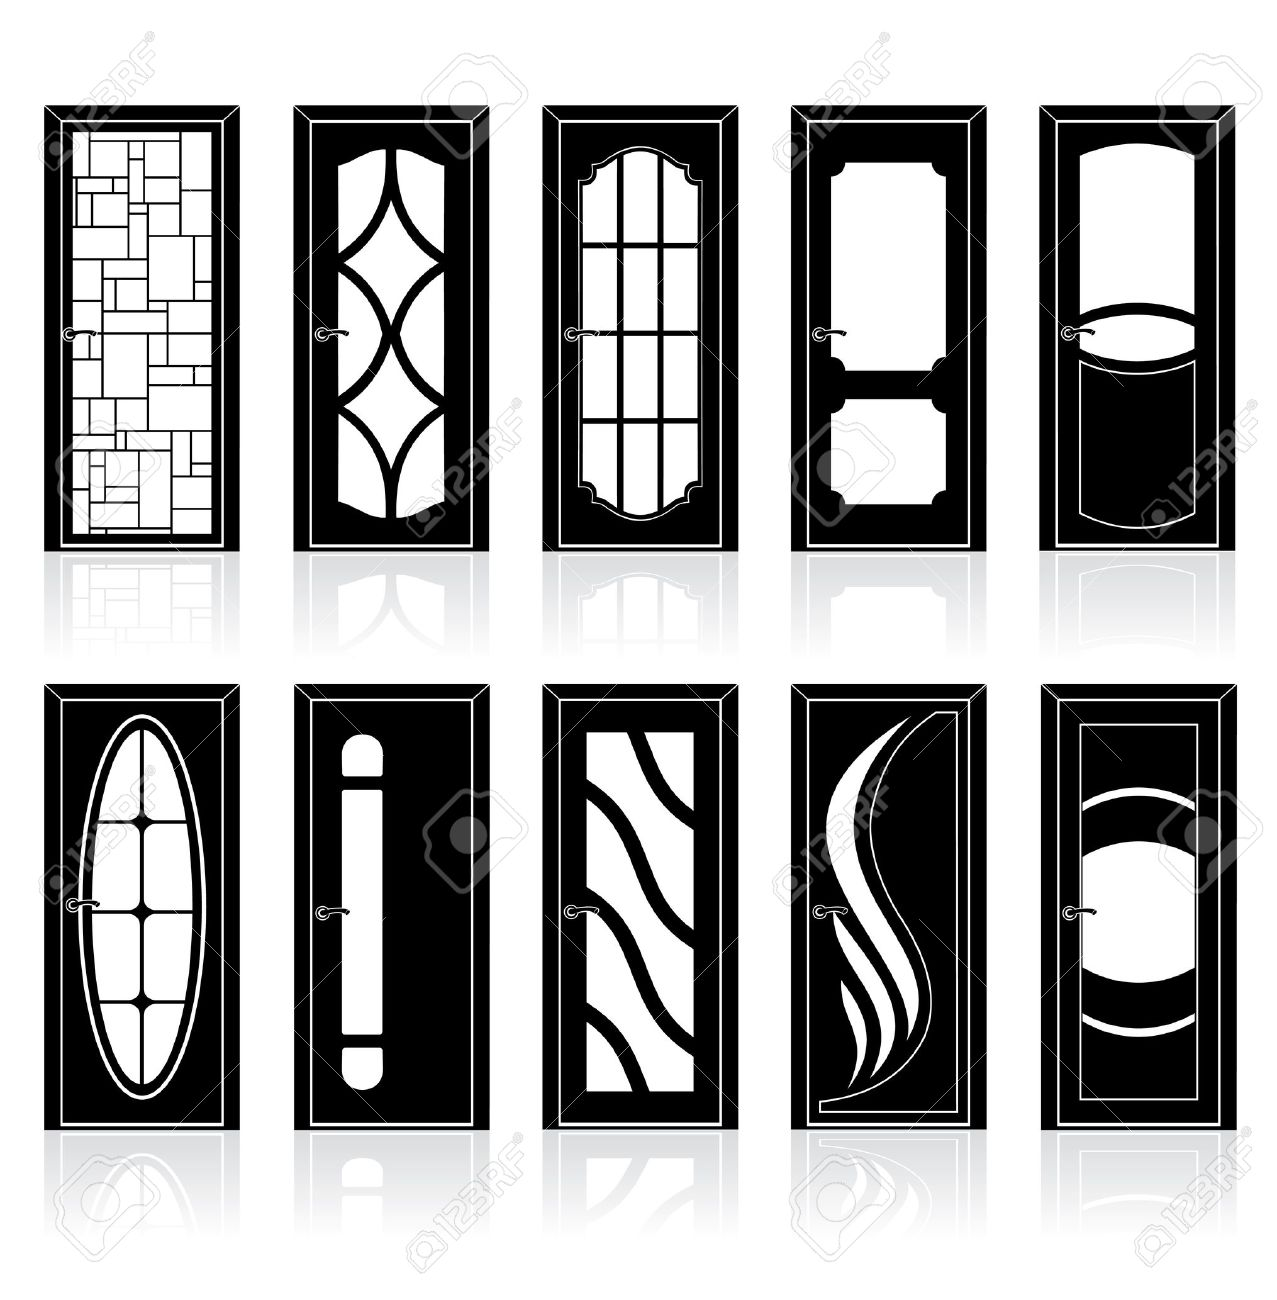 Modern front doors black - Doorframe Collection Of Modern Interior And Front Doors With Doorframe